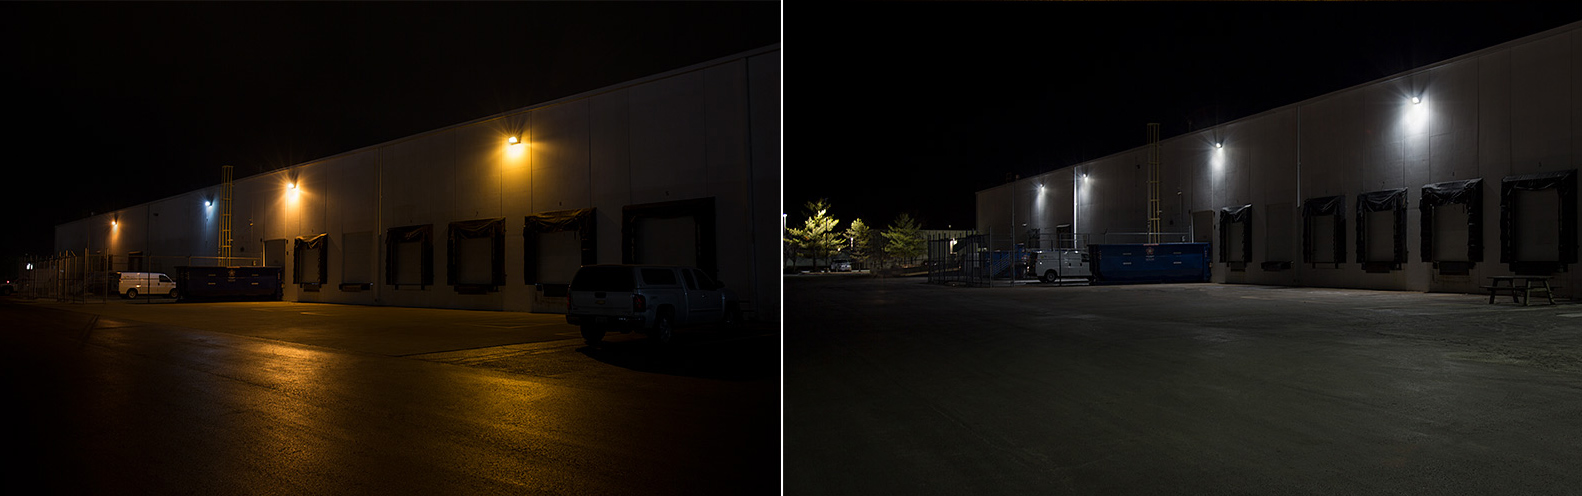 CCA LED parking lot lights project - wall pack